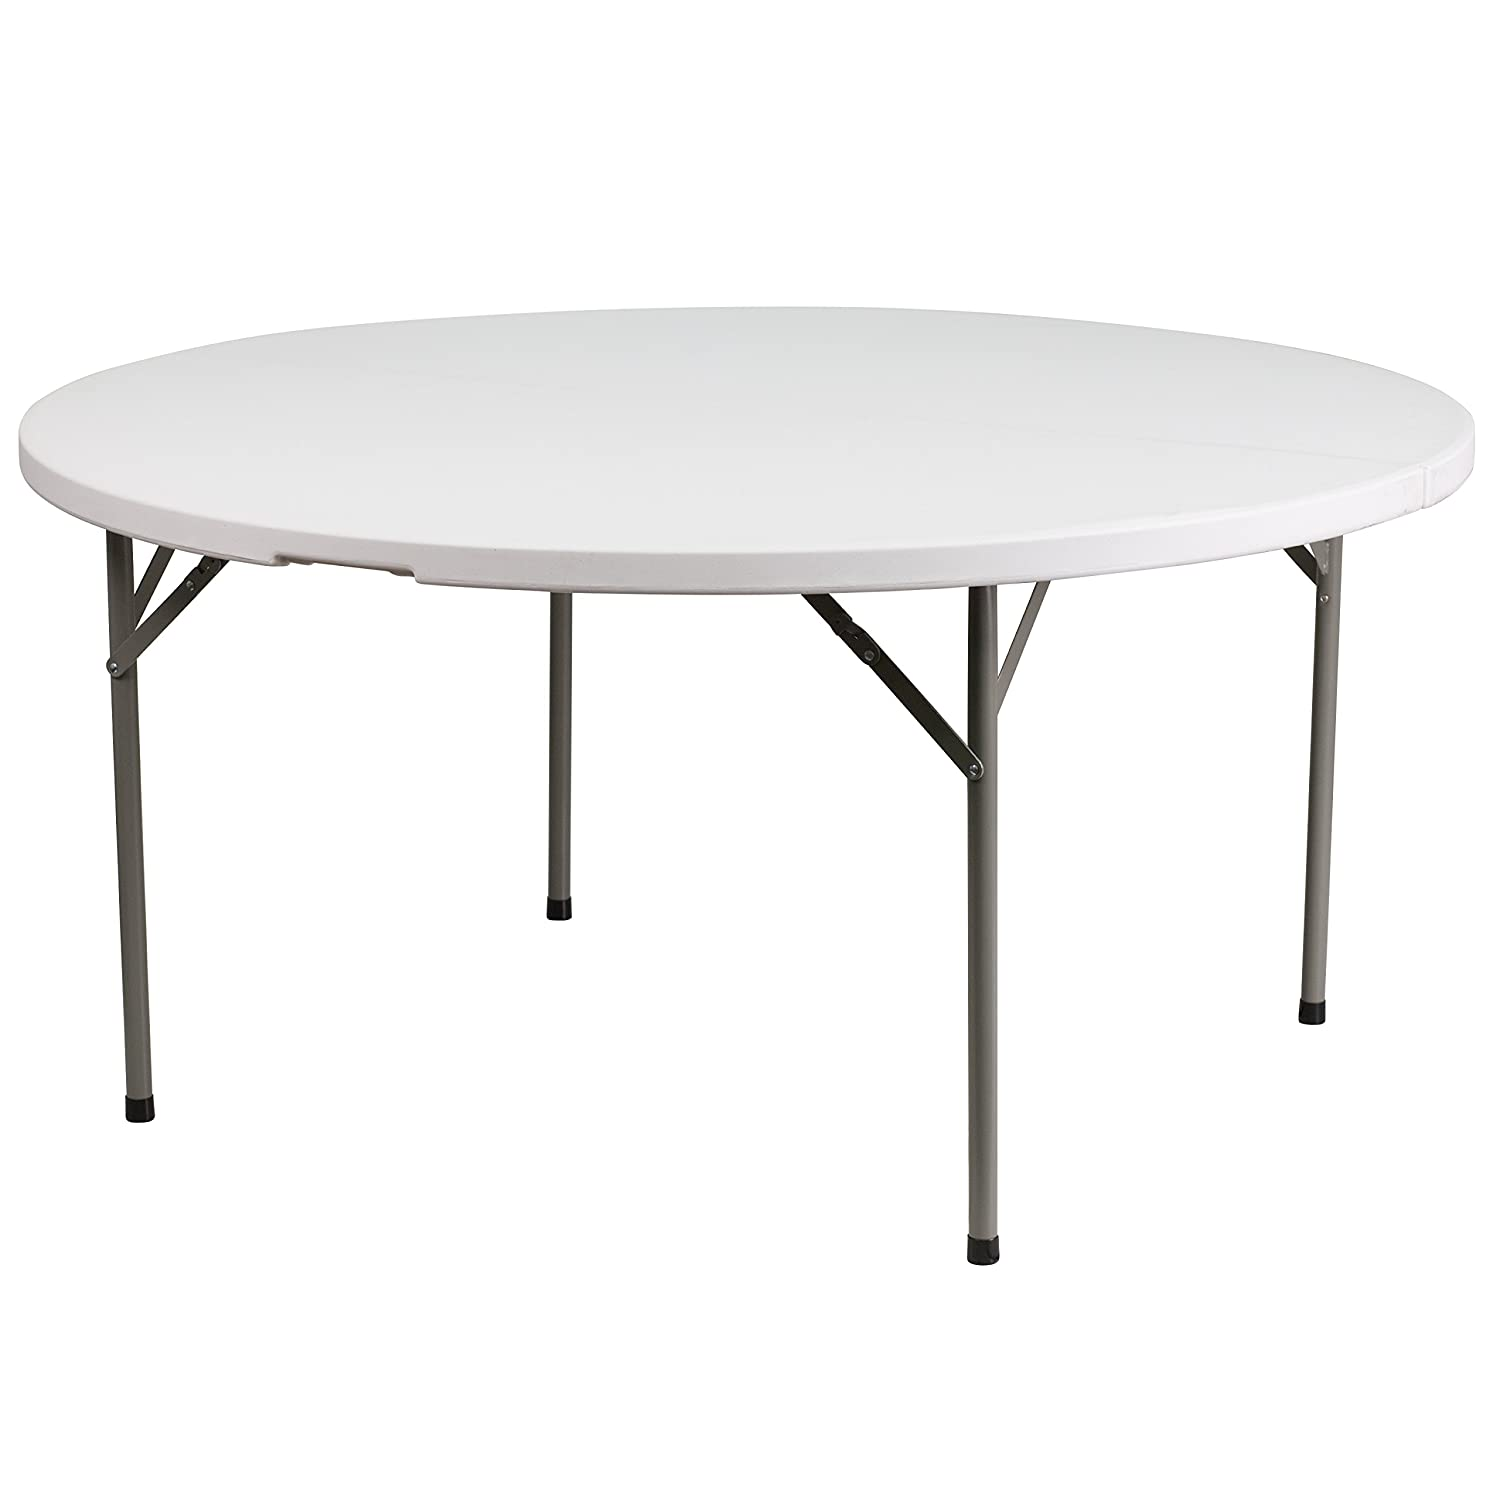 Flash Furniture 5-Foot Round Granite White Plastic Folding Table